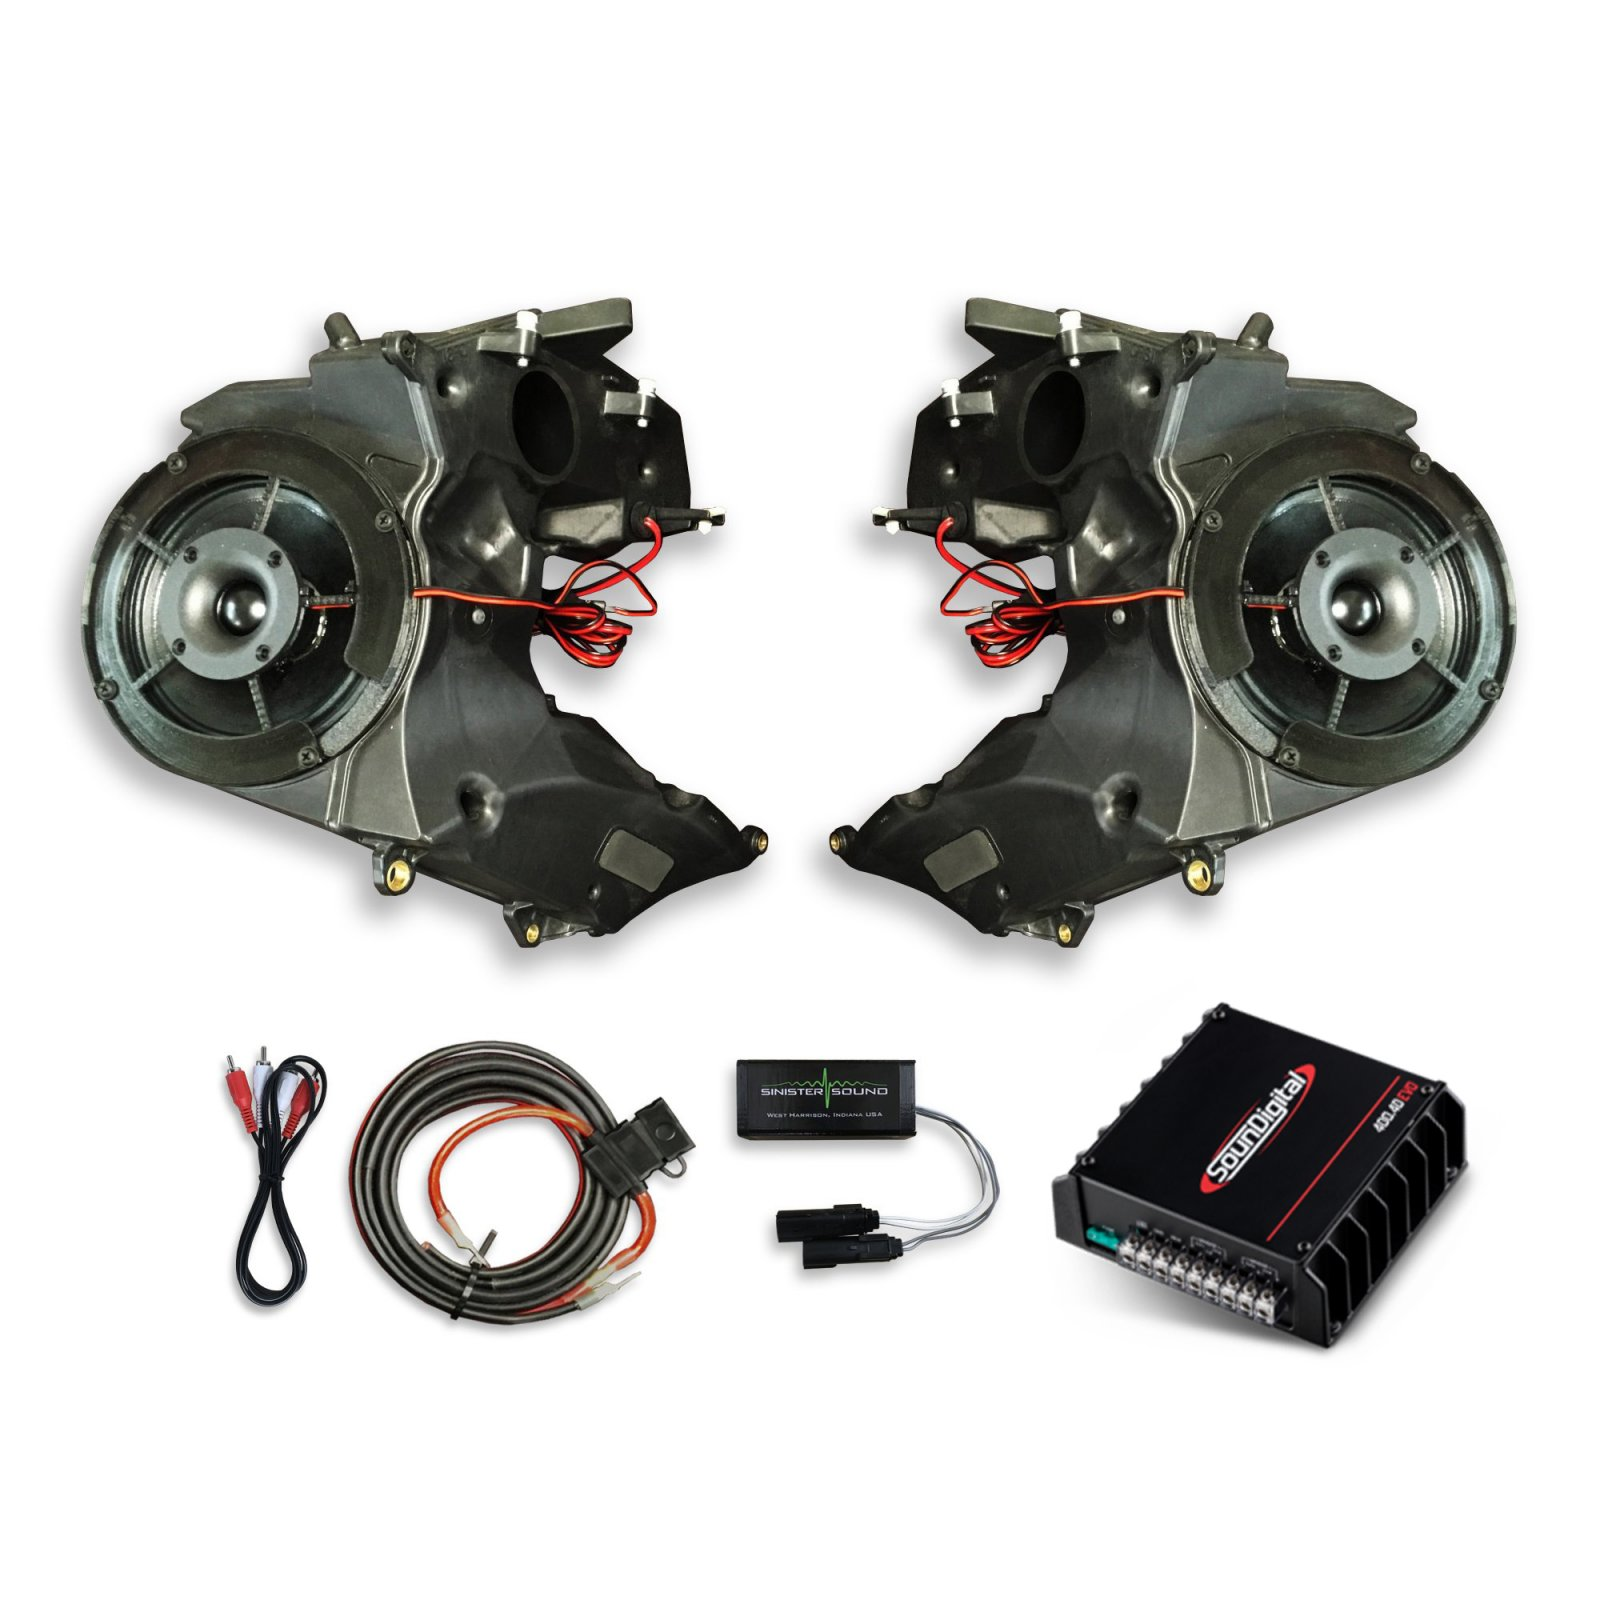 15-18 Road Glide SinisterSound Fairing System w/SounDigital 400.2D and Line Level